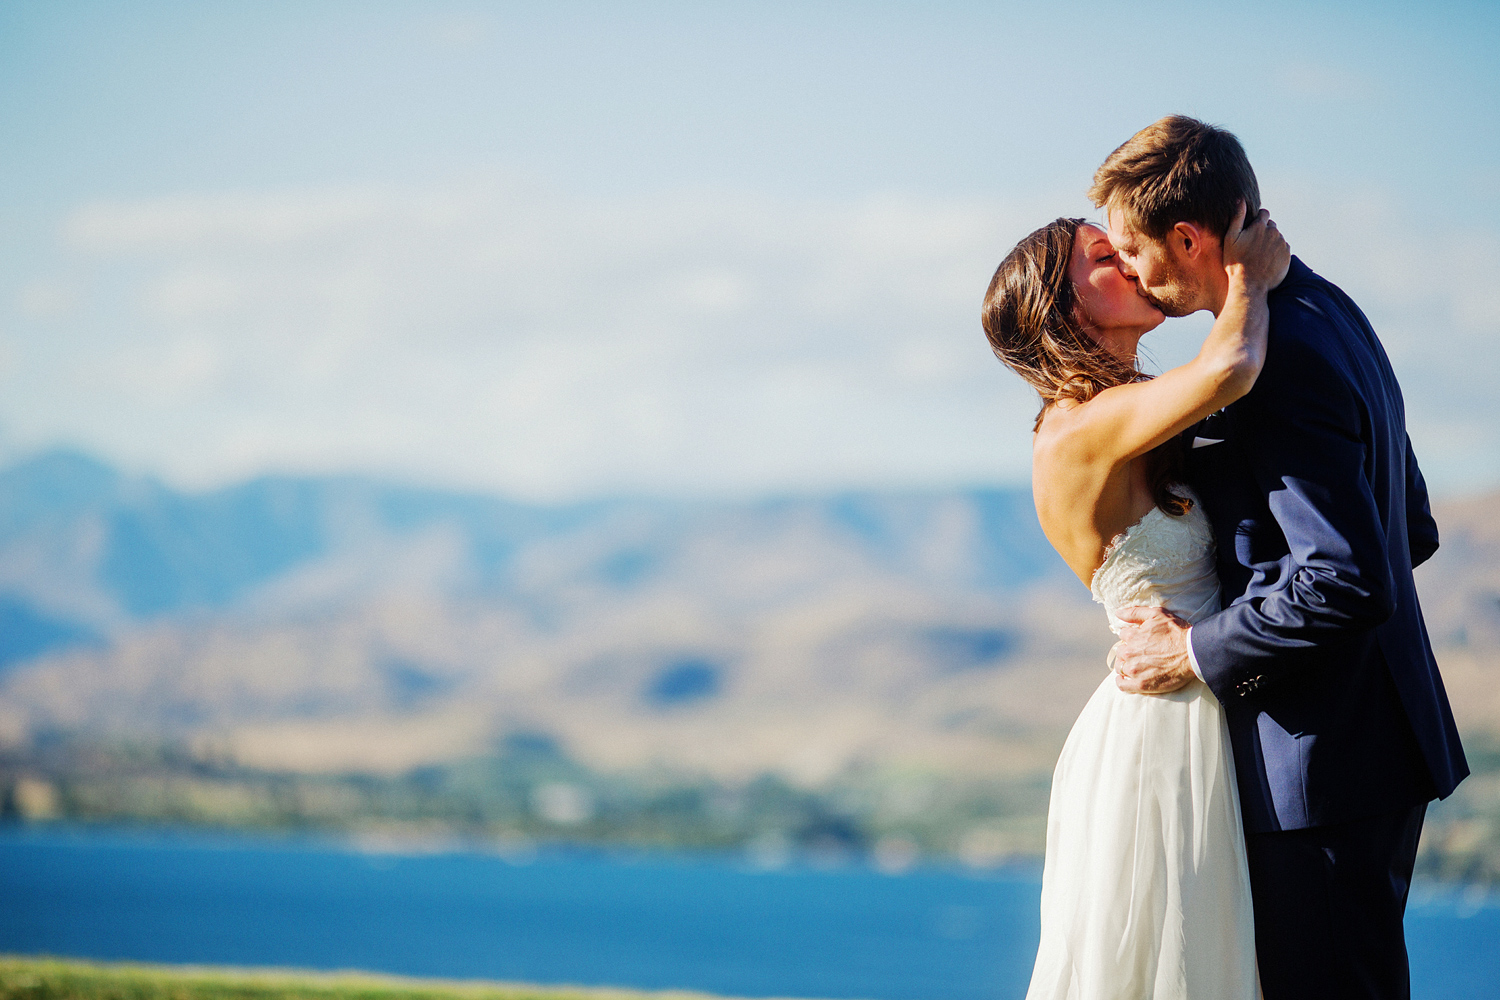 ryan-flynn-seattle-film-photographer-lake-chelan-wedding-0049.JPG